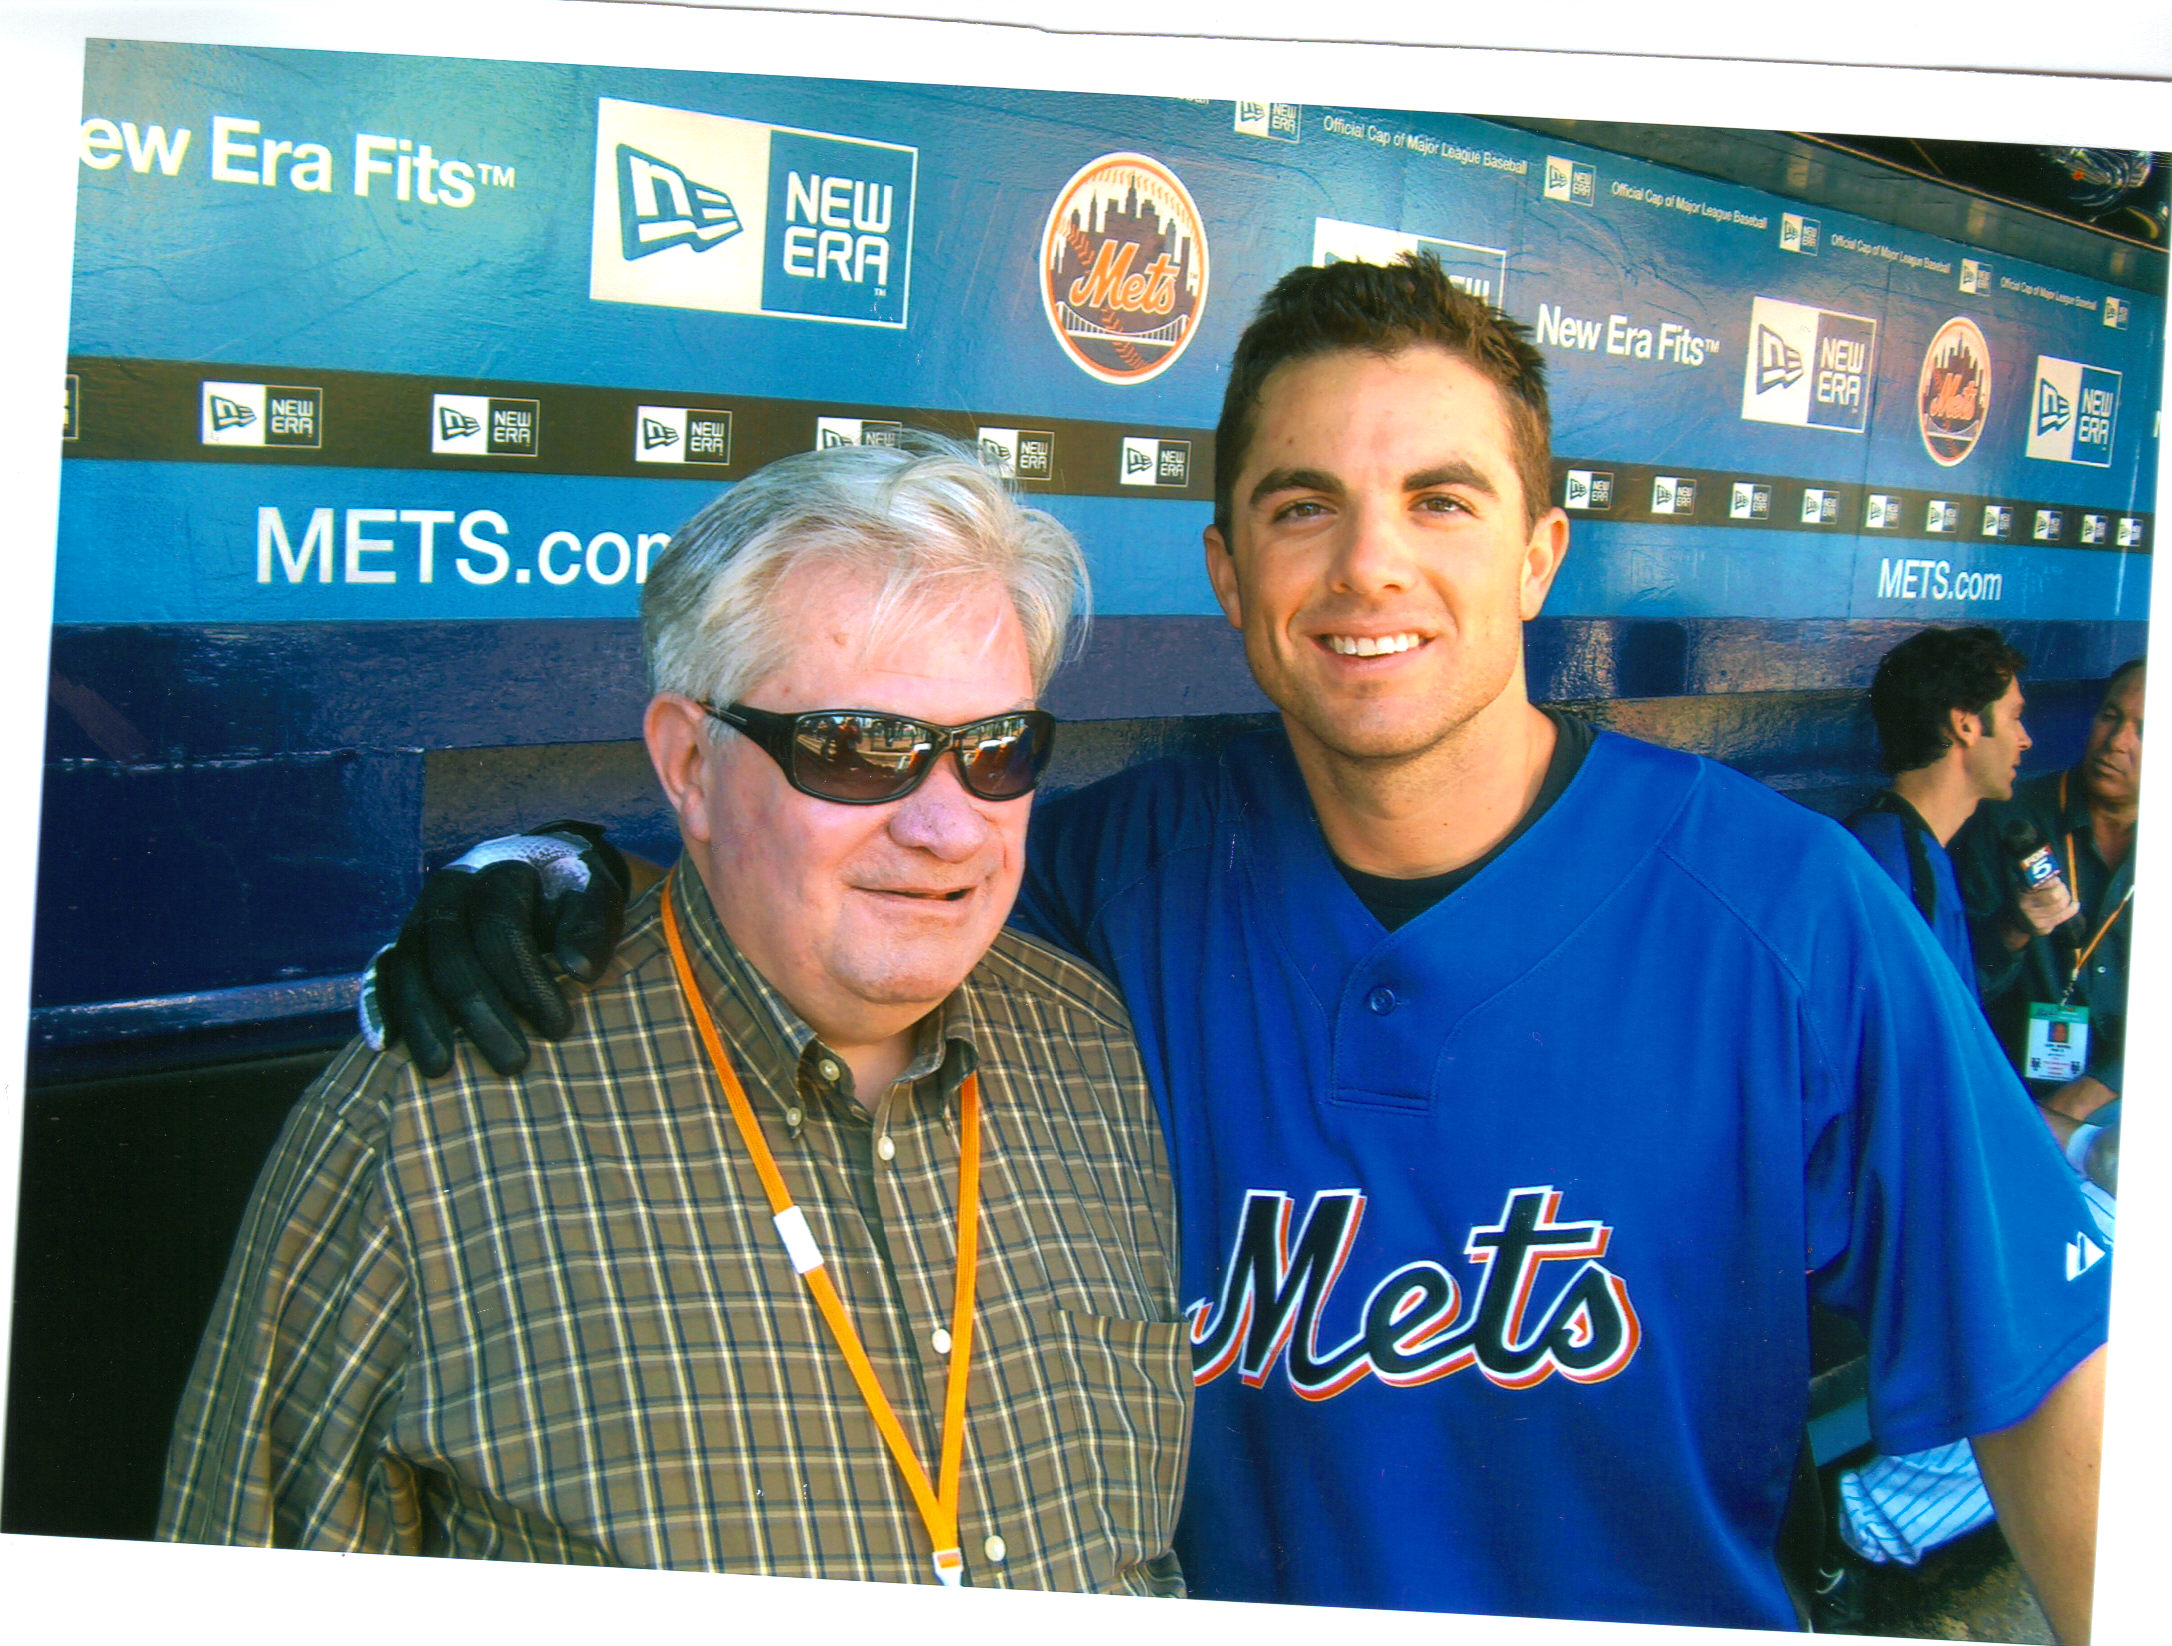 Ed and David Wright NY Mets.jpg